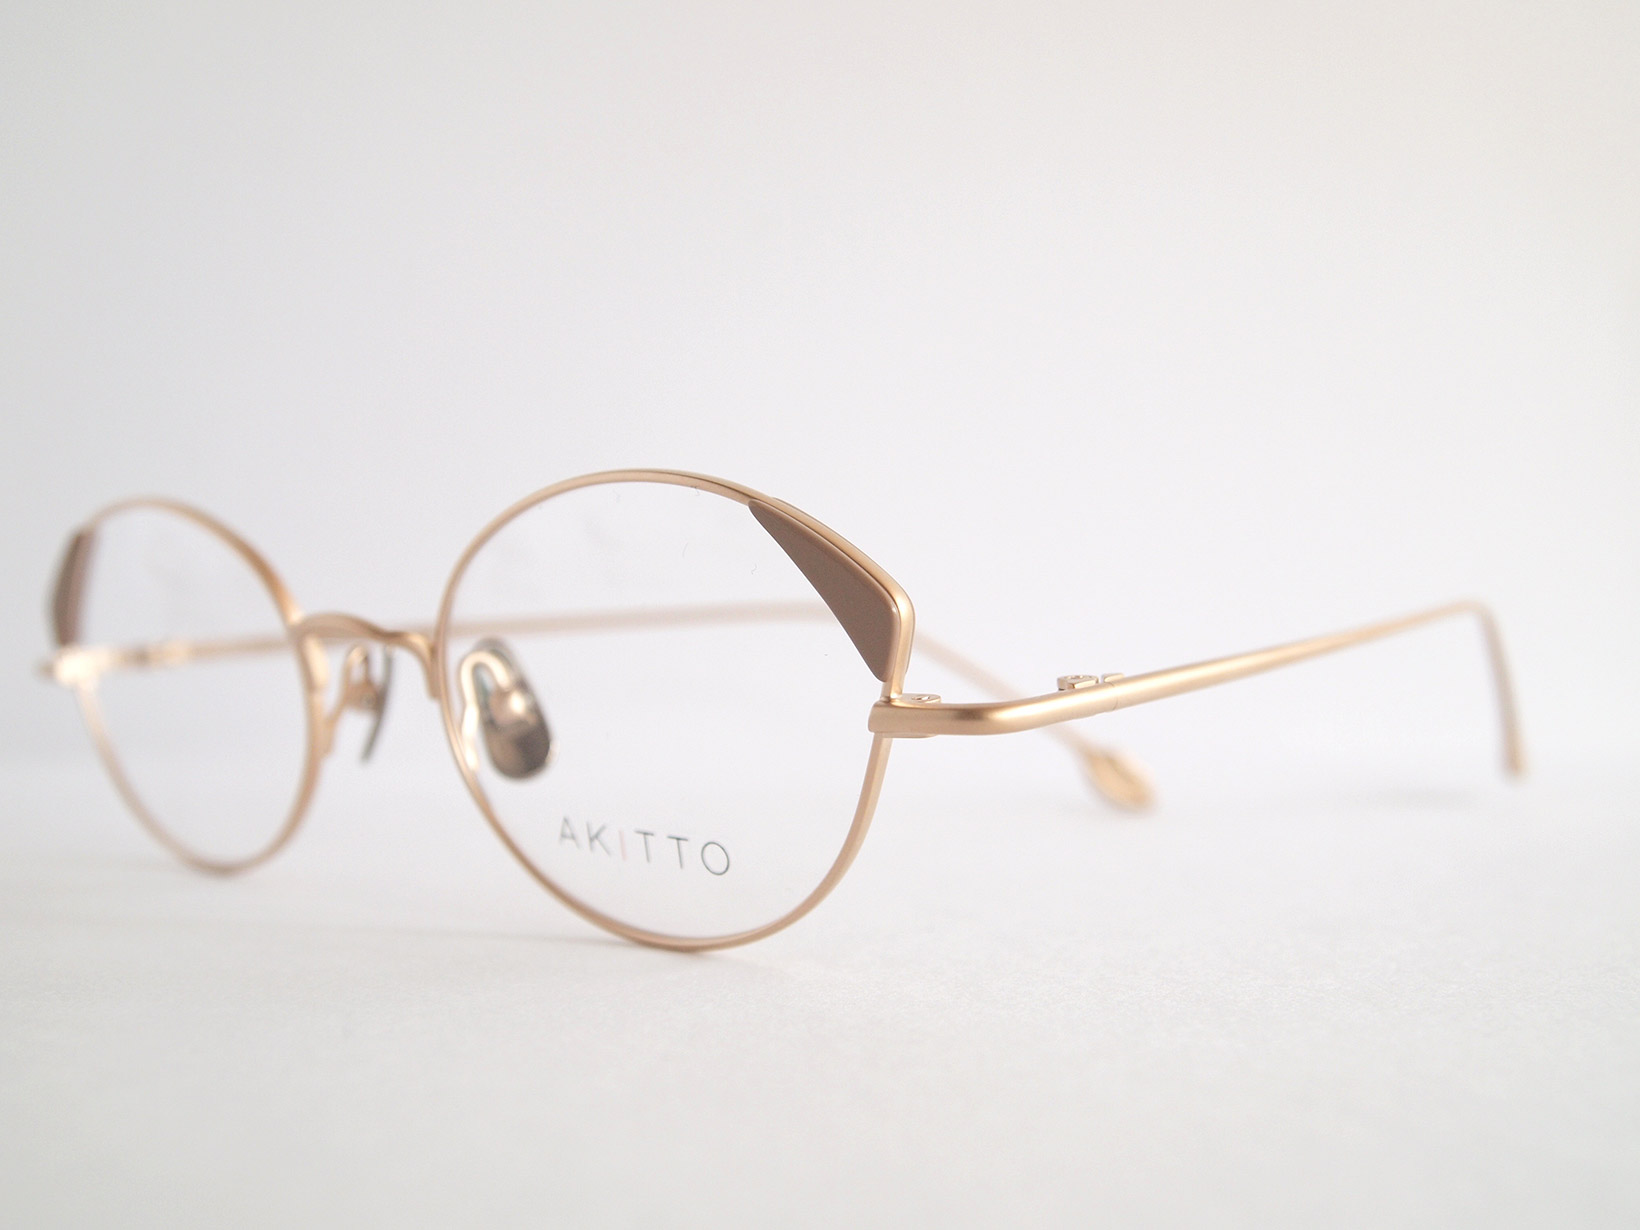 AKITTO 2018-4th pin4 color|GG size:47□19 material:titanium+acetate price:¥42,000-(+tax)